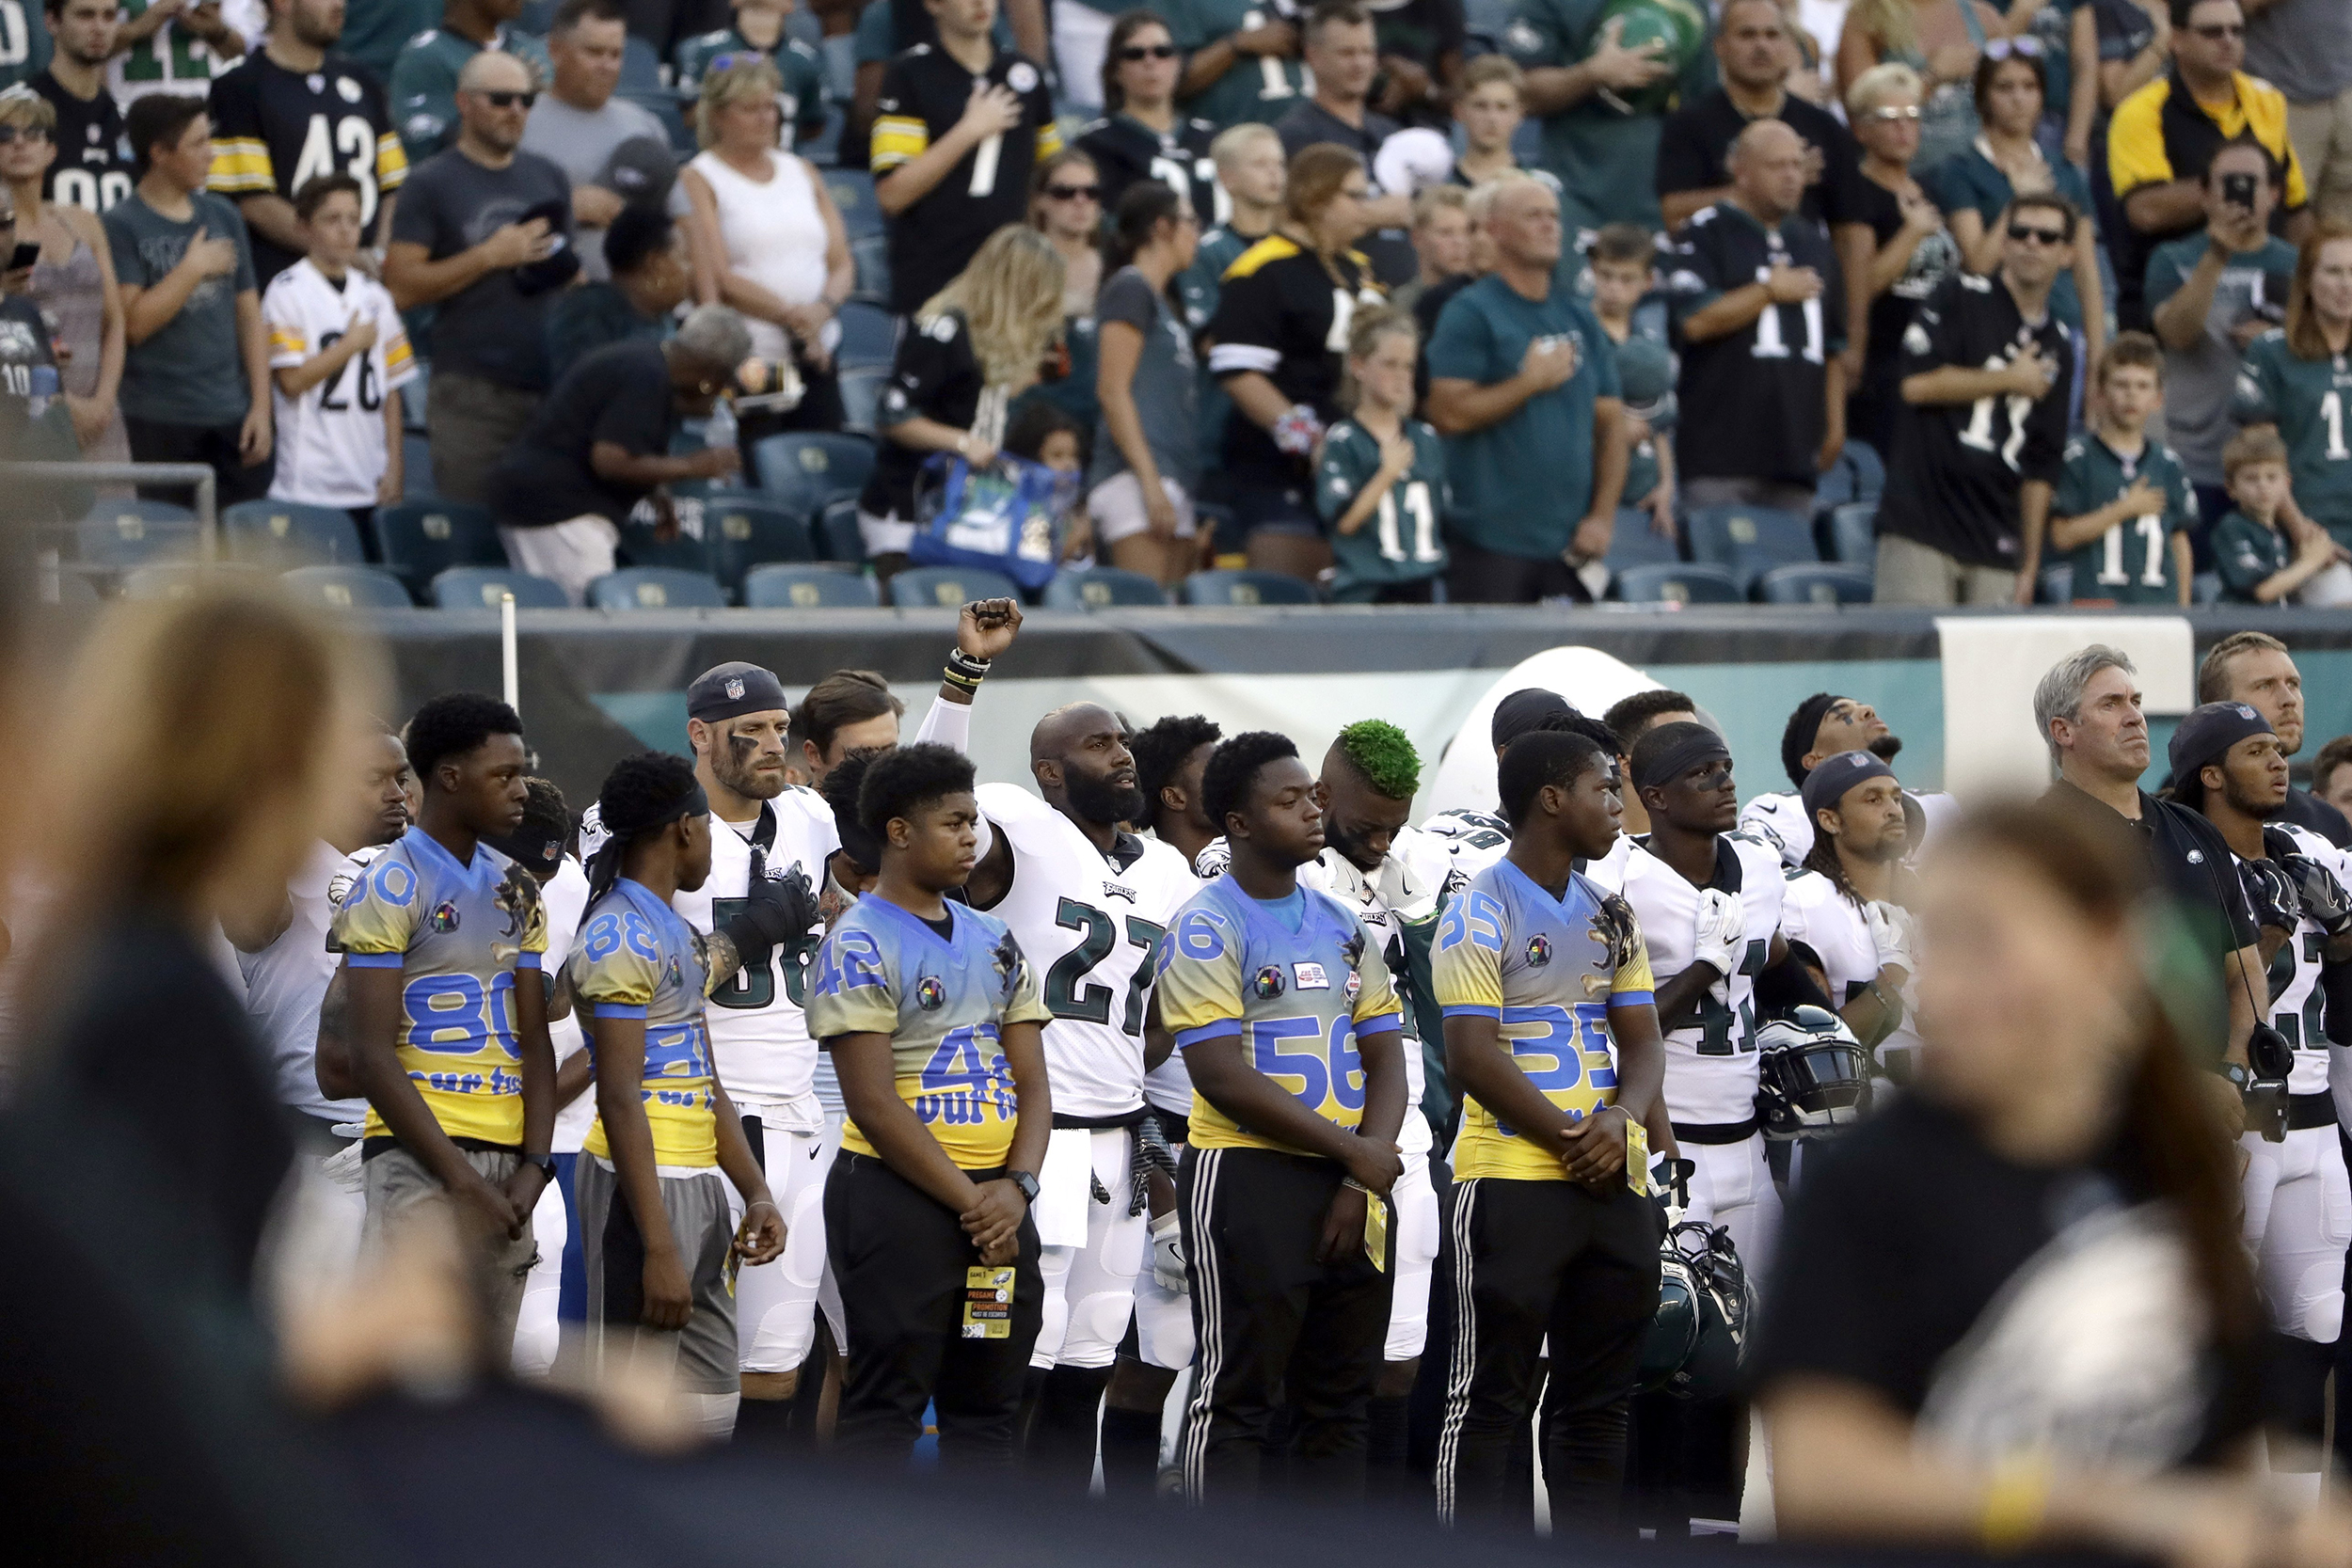 Some NFL players kneel or raise fists during anthem before